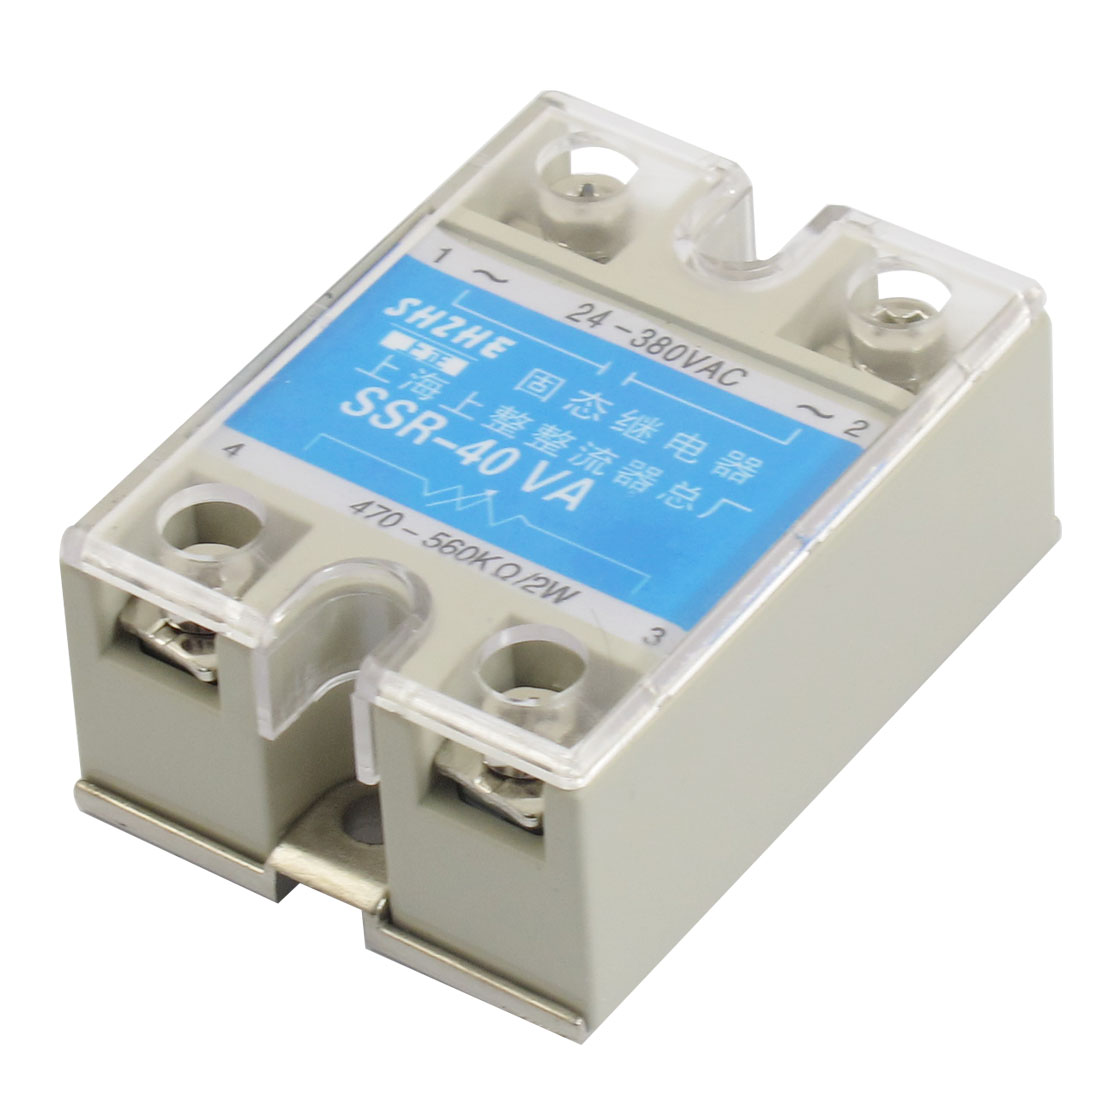 SSR-40VA 40A AC 24-380V Output Covered Adjustable Solid State Module Relay